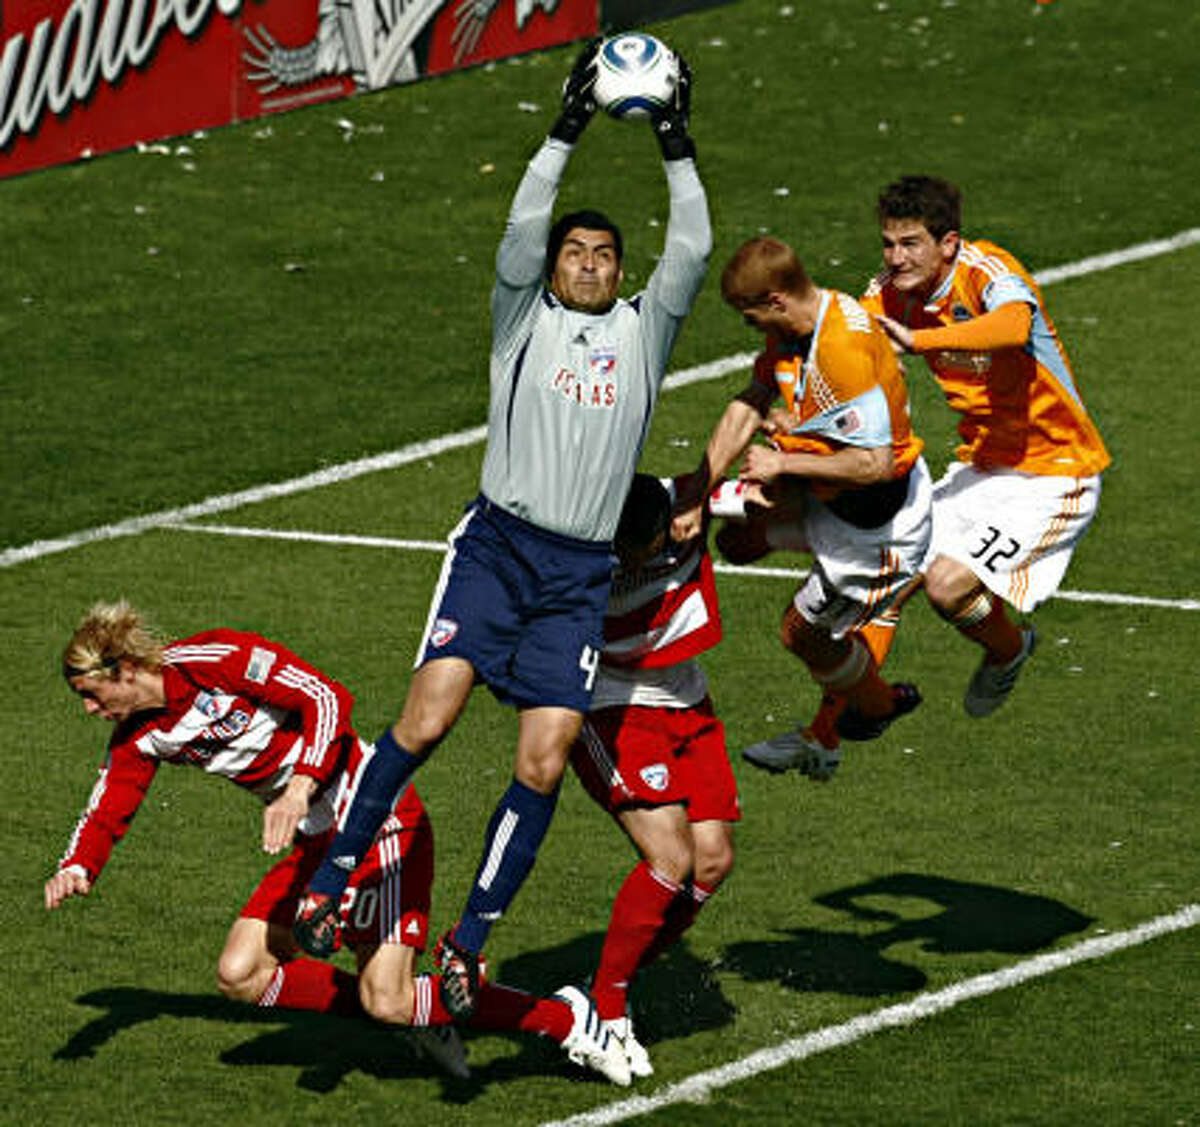 FC Dallas goalkeeper Kevin Hartman reaches high to snag the ball.